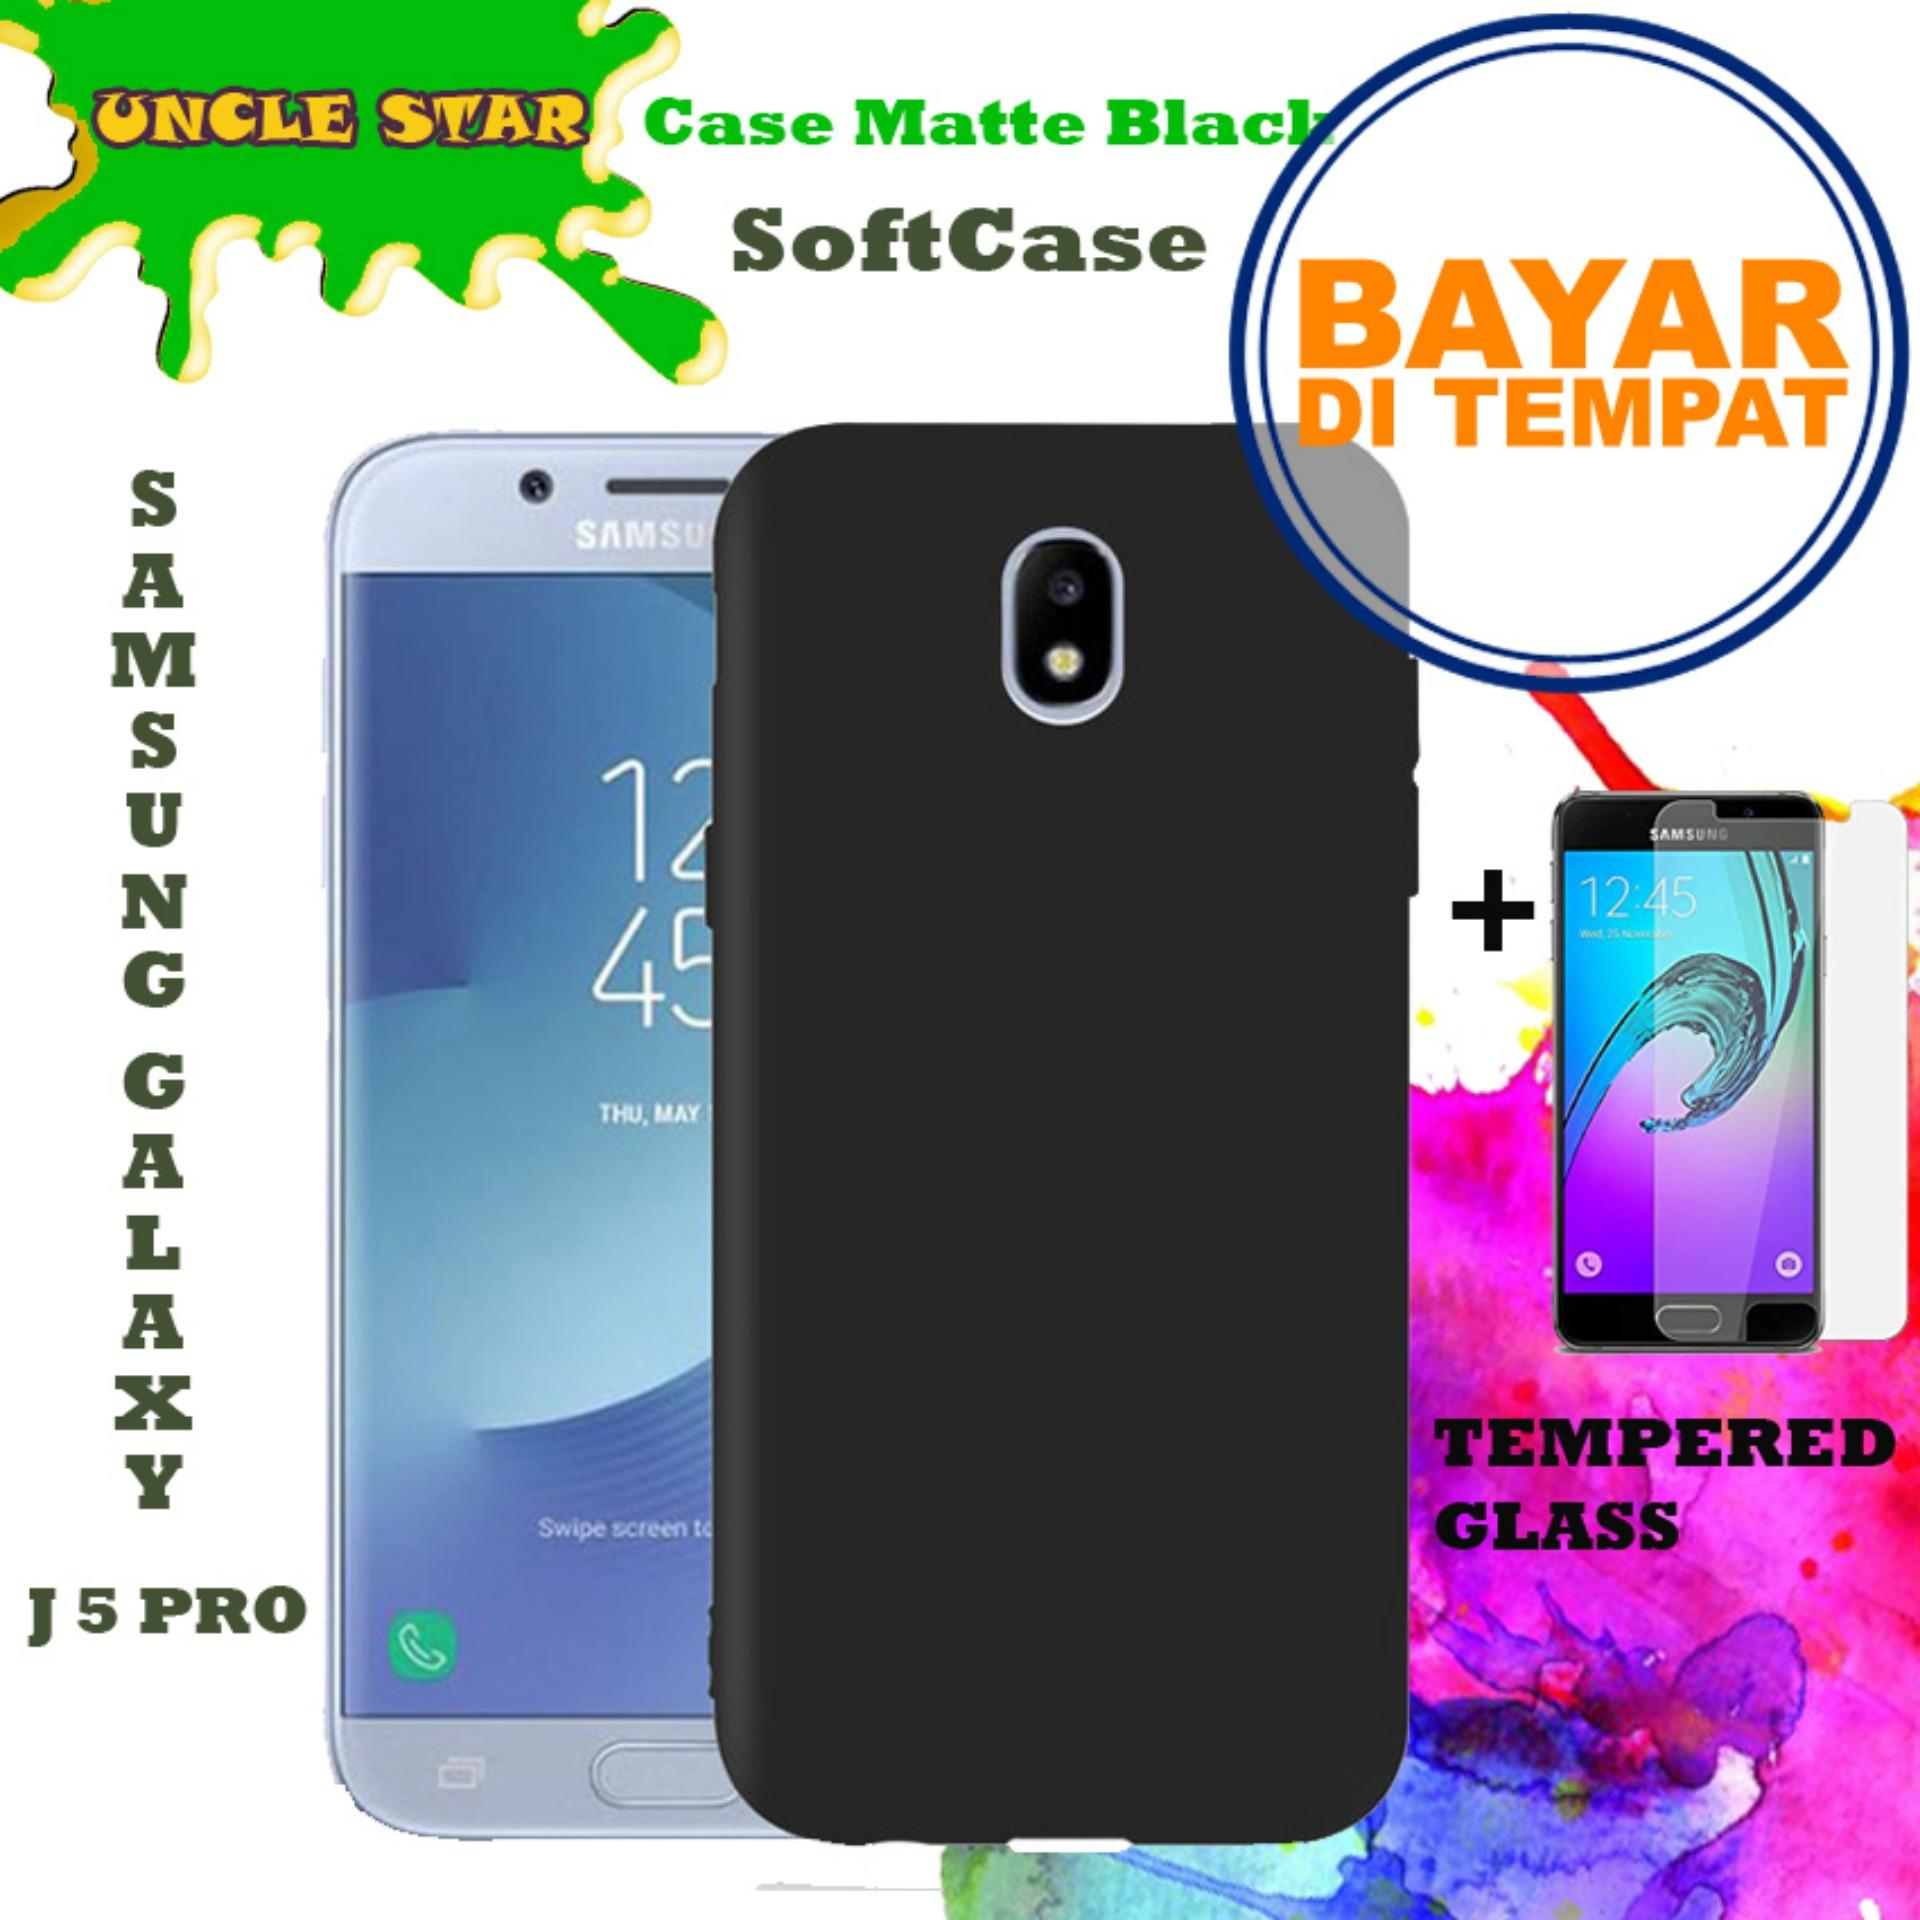 Uncle Star - SOFTCASE Case Matte Black Elegant For Samsung Galaxy J5 Pro + Free Tempered